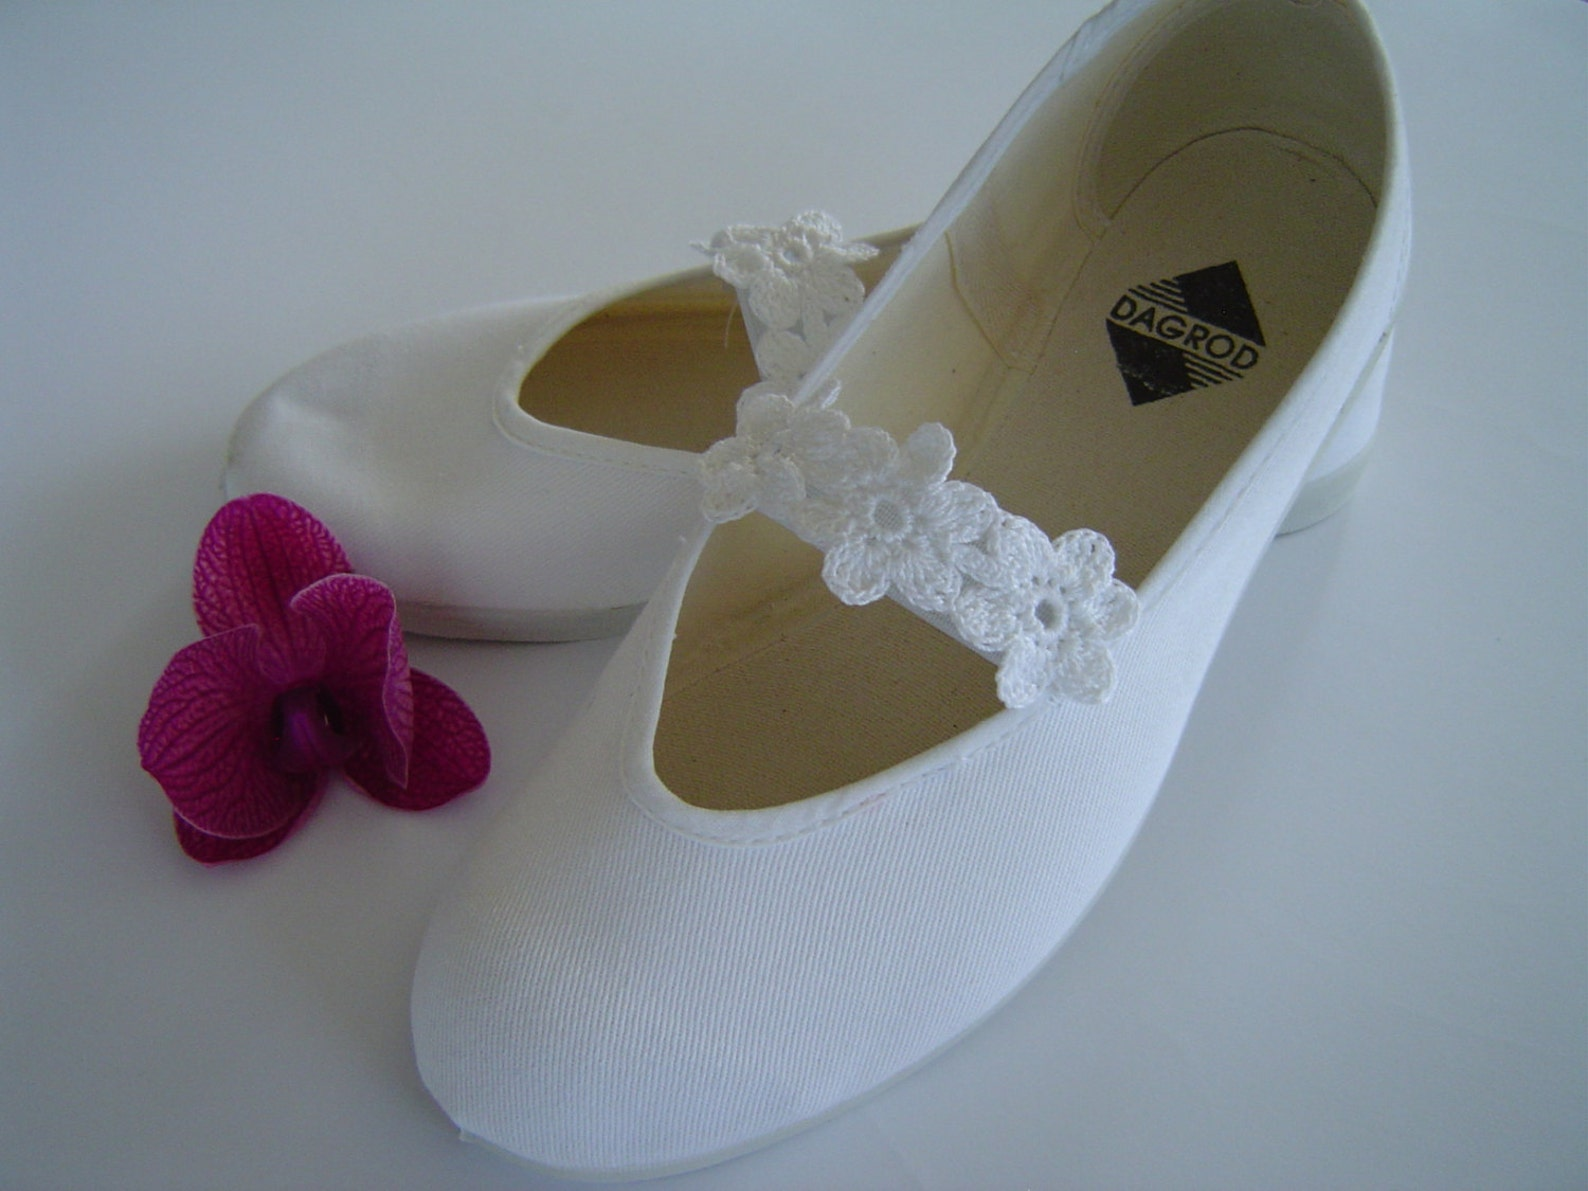 woman summer shoes,girls shoes,mary jane shoes,bridal flats,white cotton romantic shoes,wedding ballet flats,summer dress shoes